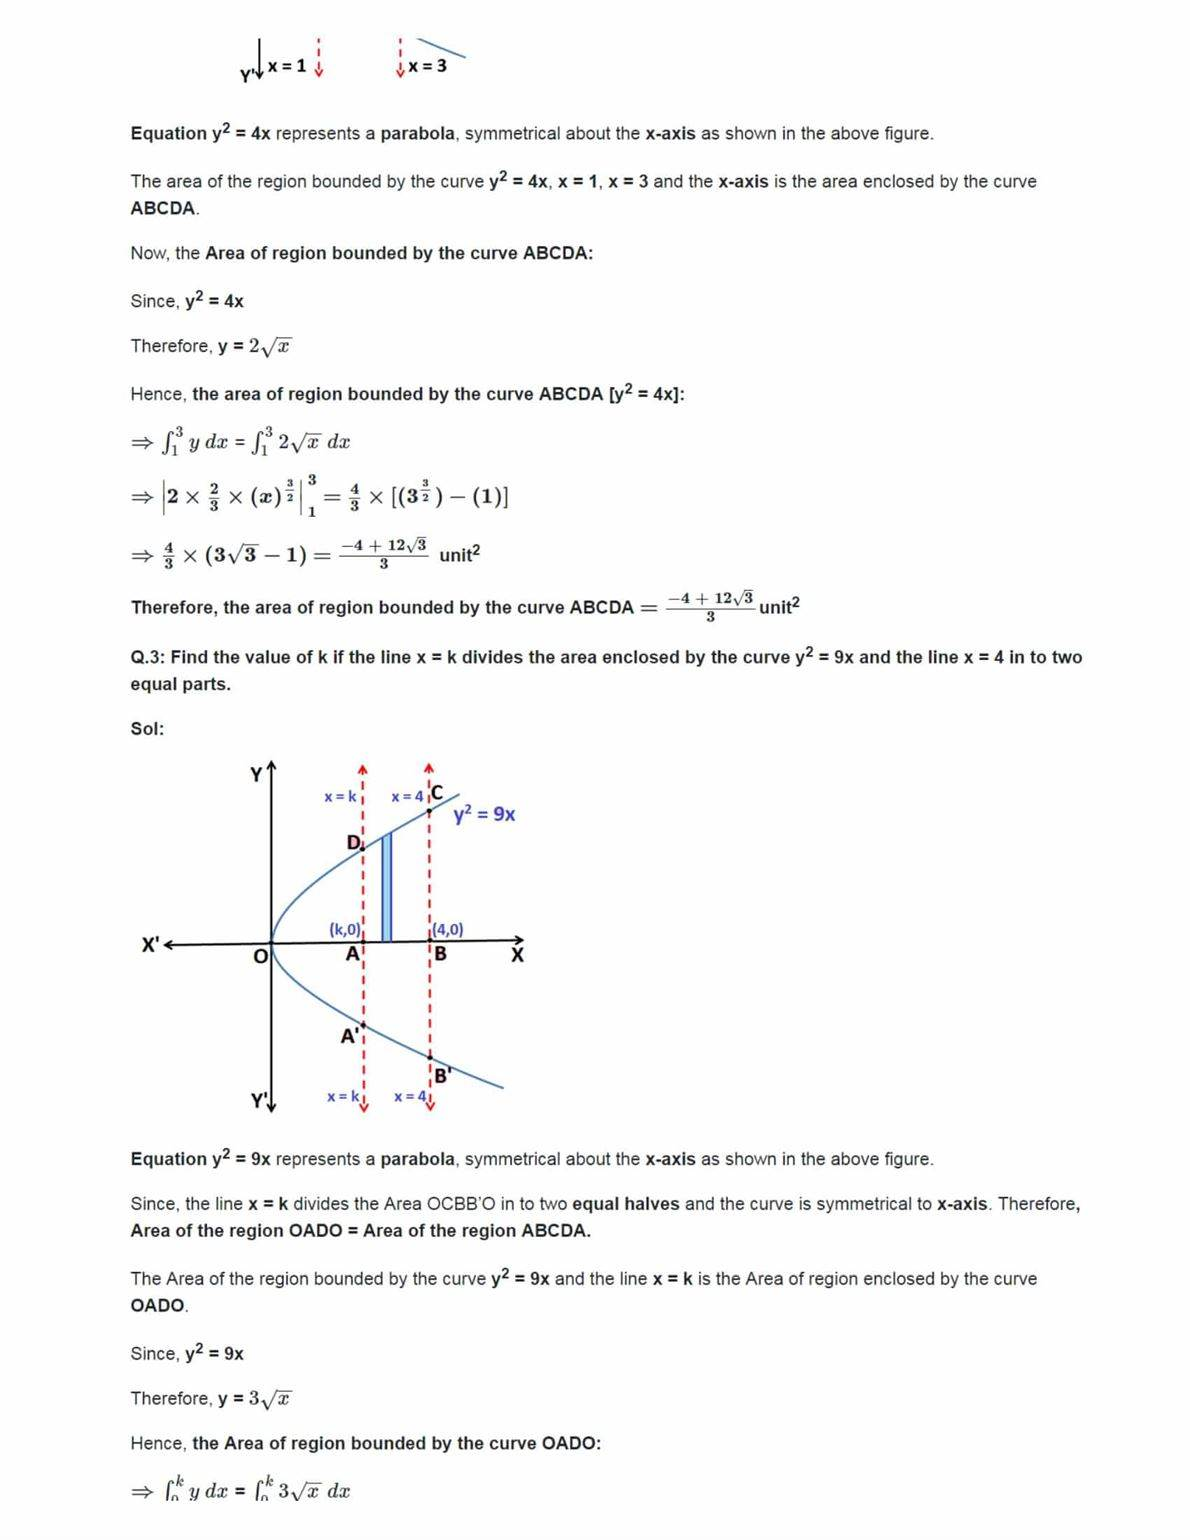 Ncert Solutions For Class 12 Maths Chapter 8 Ex 8.1